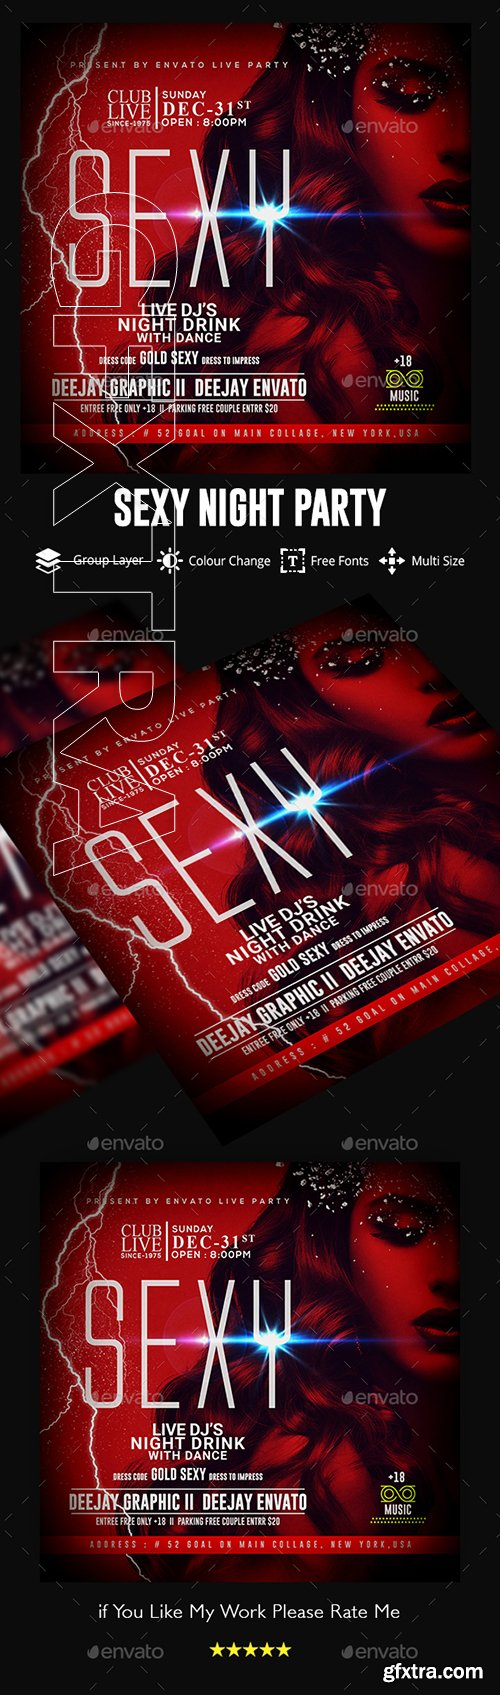 GraphicRiver - Guest DJ Artist Flyer 22719496